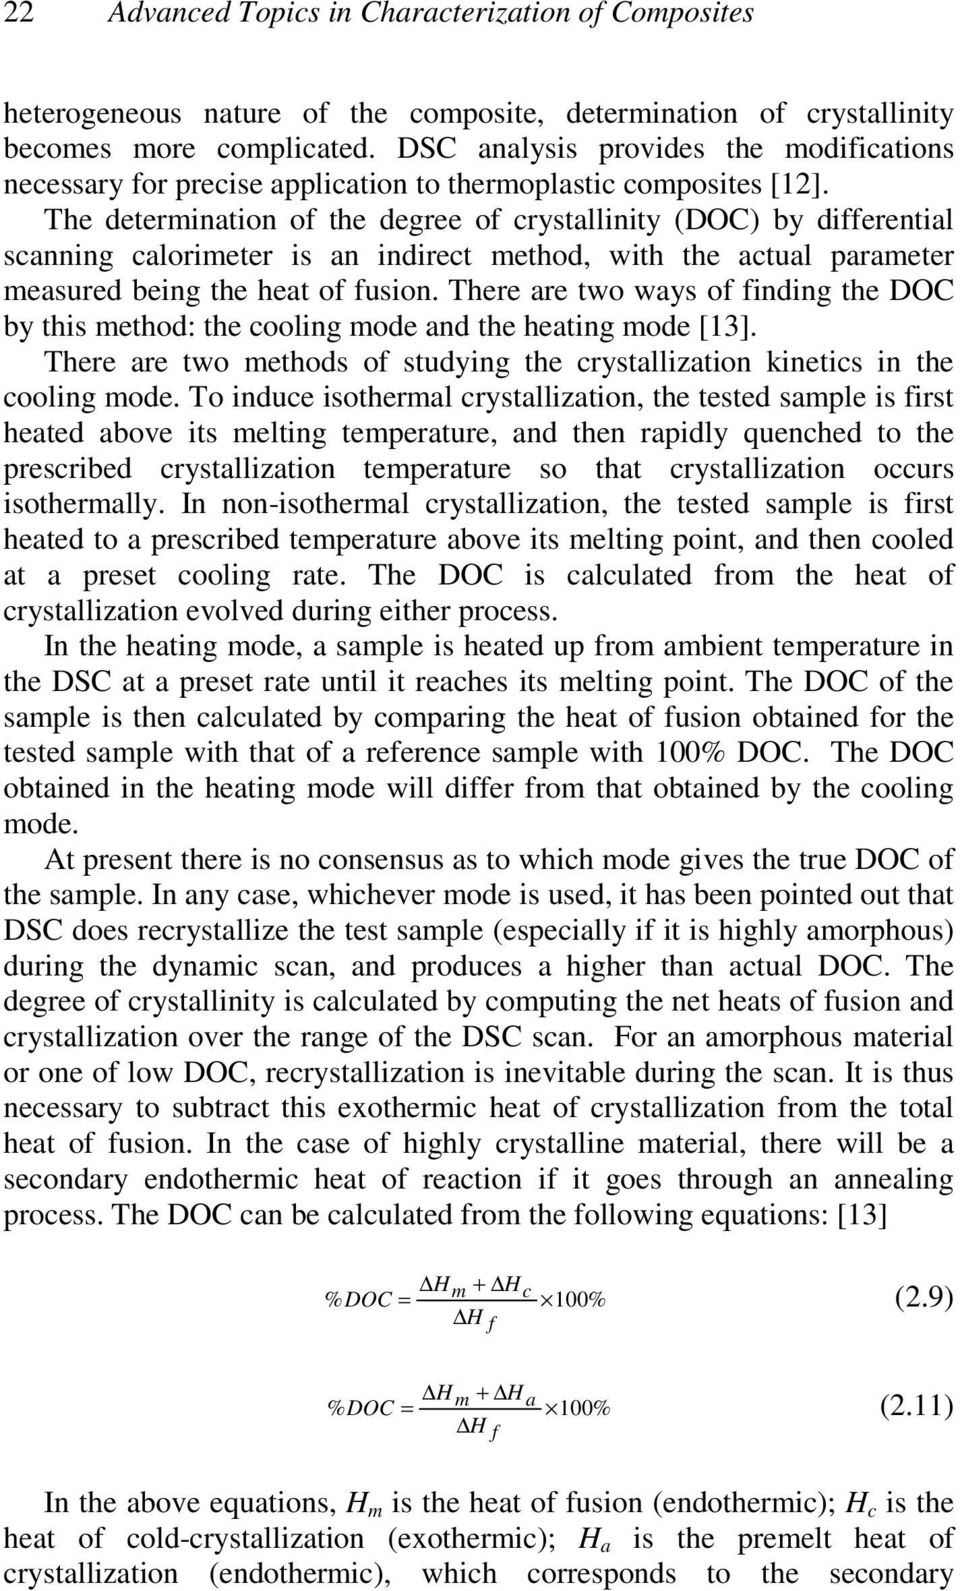 The determination of the degree of crystallinity (DOC) by differential scanning calorimeter is an indirect method, with the actual parameter measured being the heat of fusion.